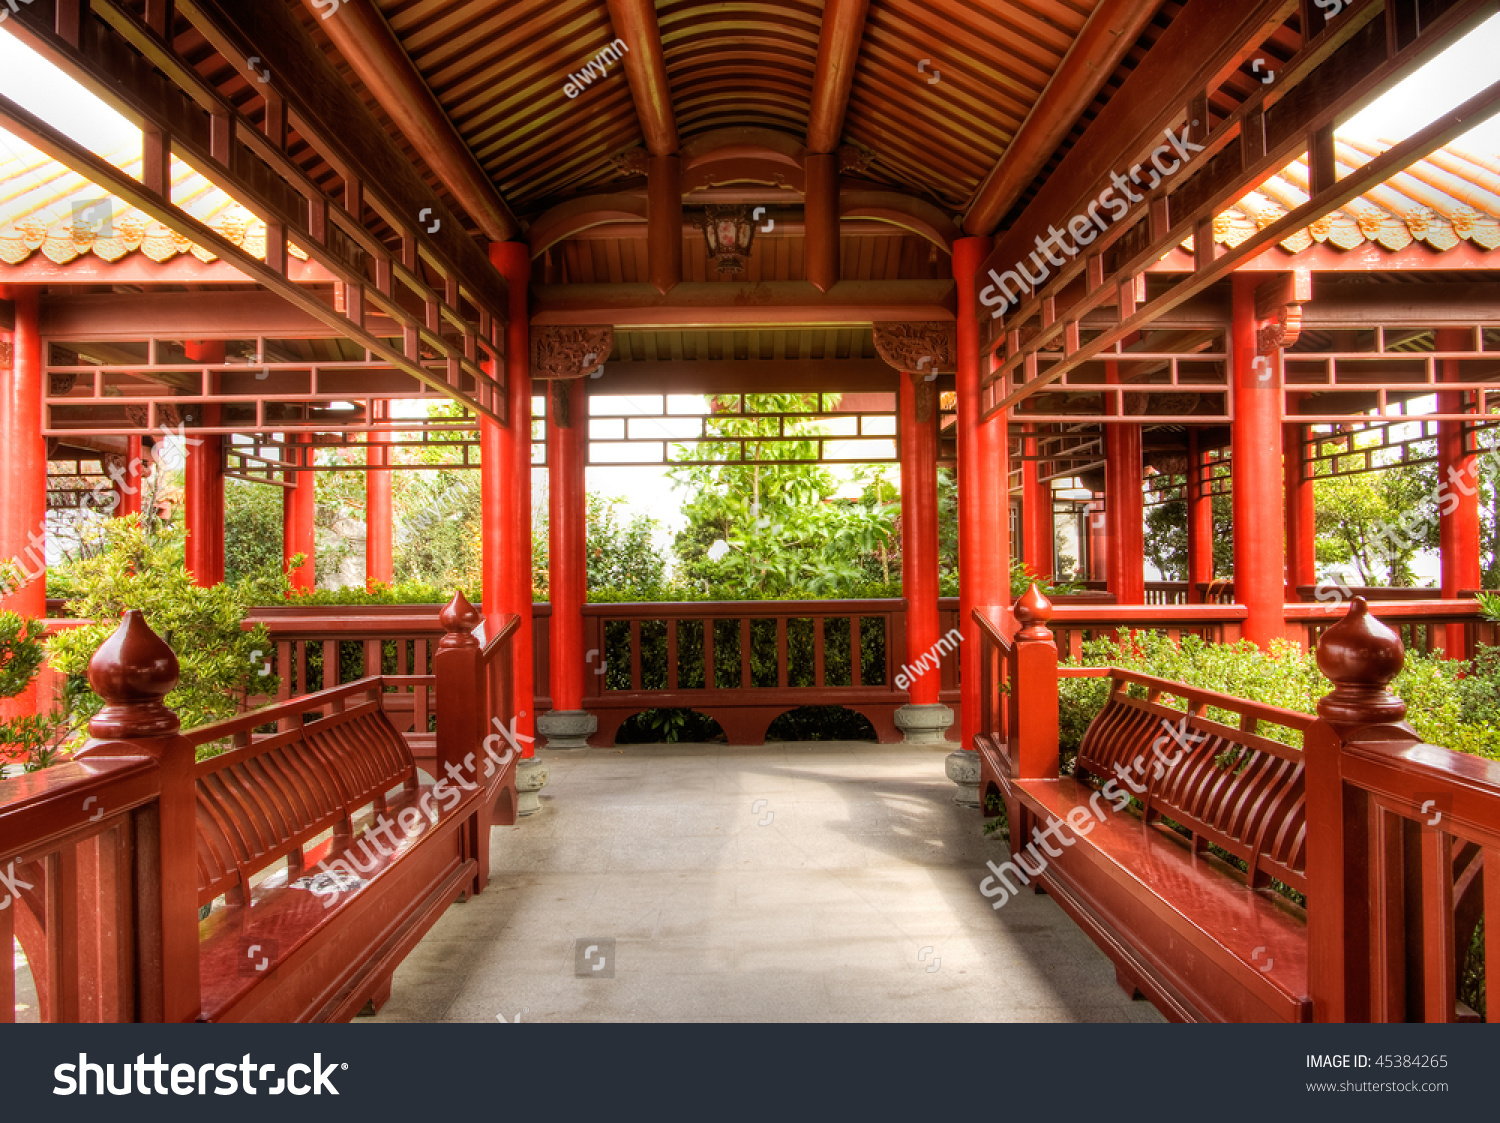 Corridor Roof Design: Chinese Traditional Wooden Architecture Of Corridor In